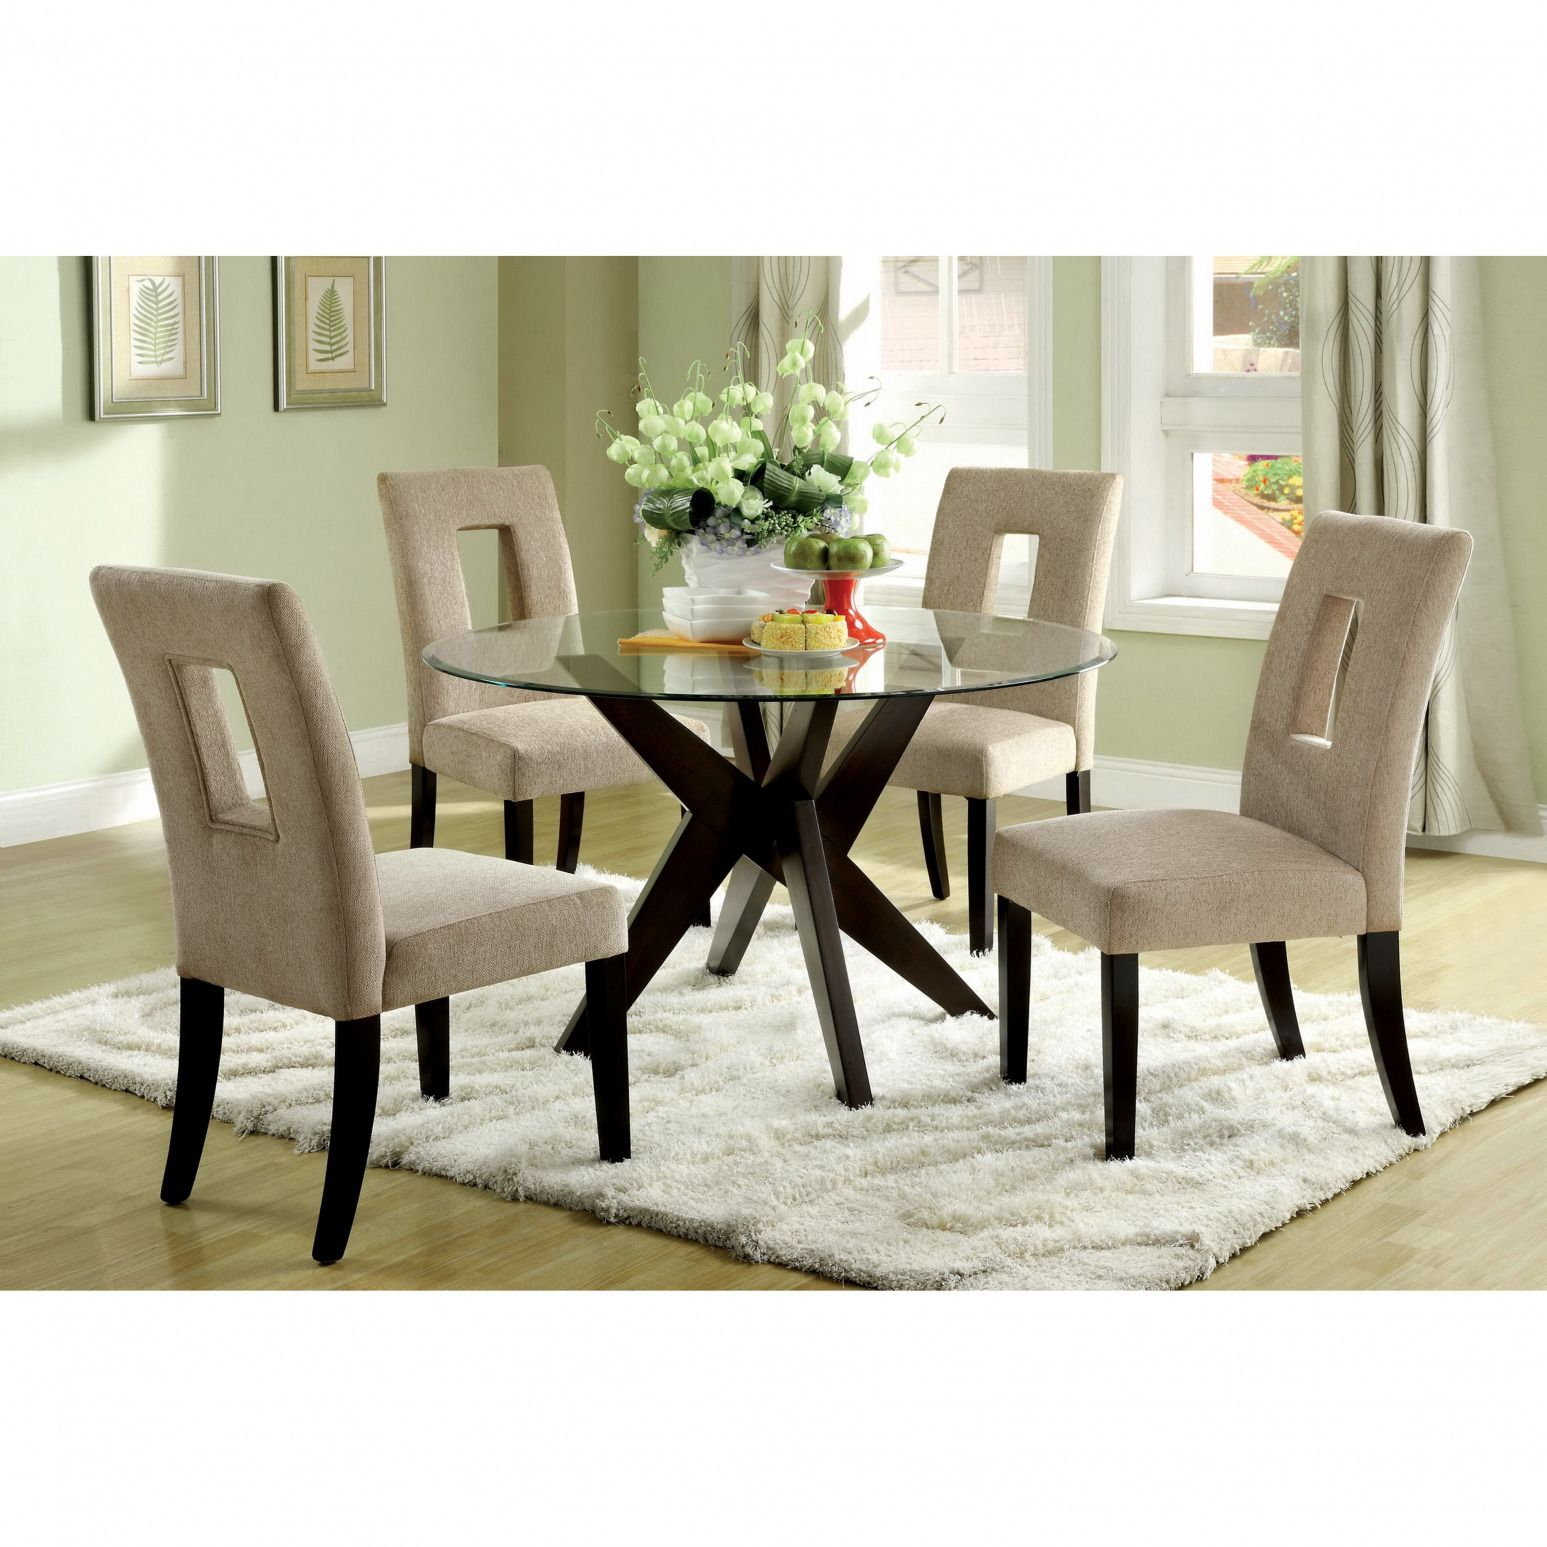 100 42 Inch Round Gl Top Dining Table Best Modern Furniture Check More